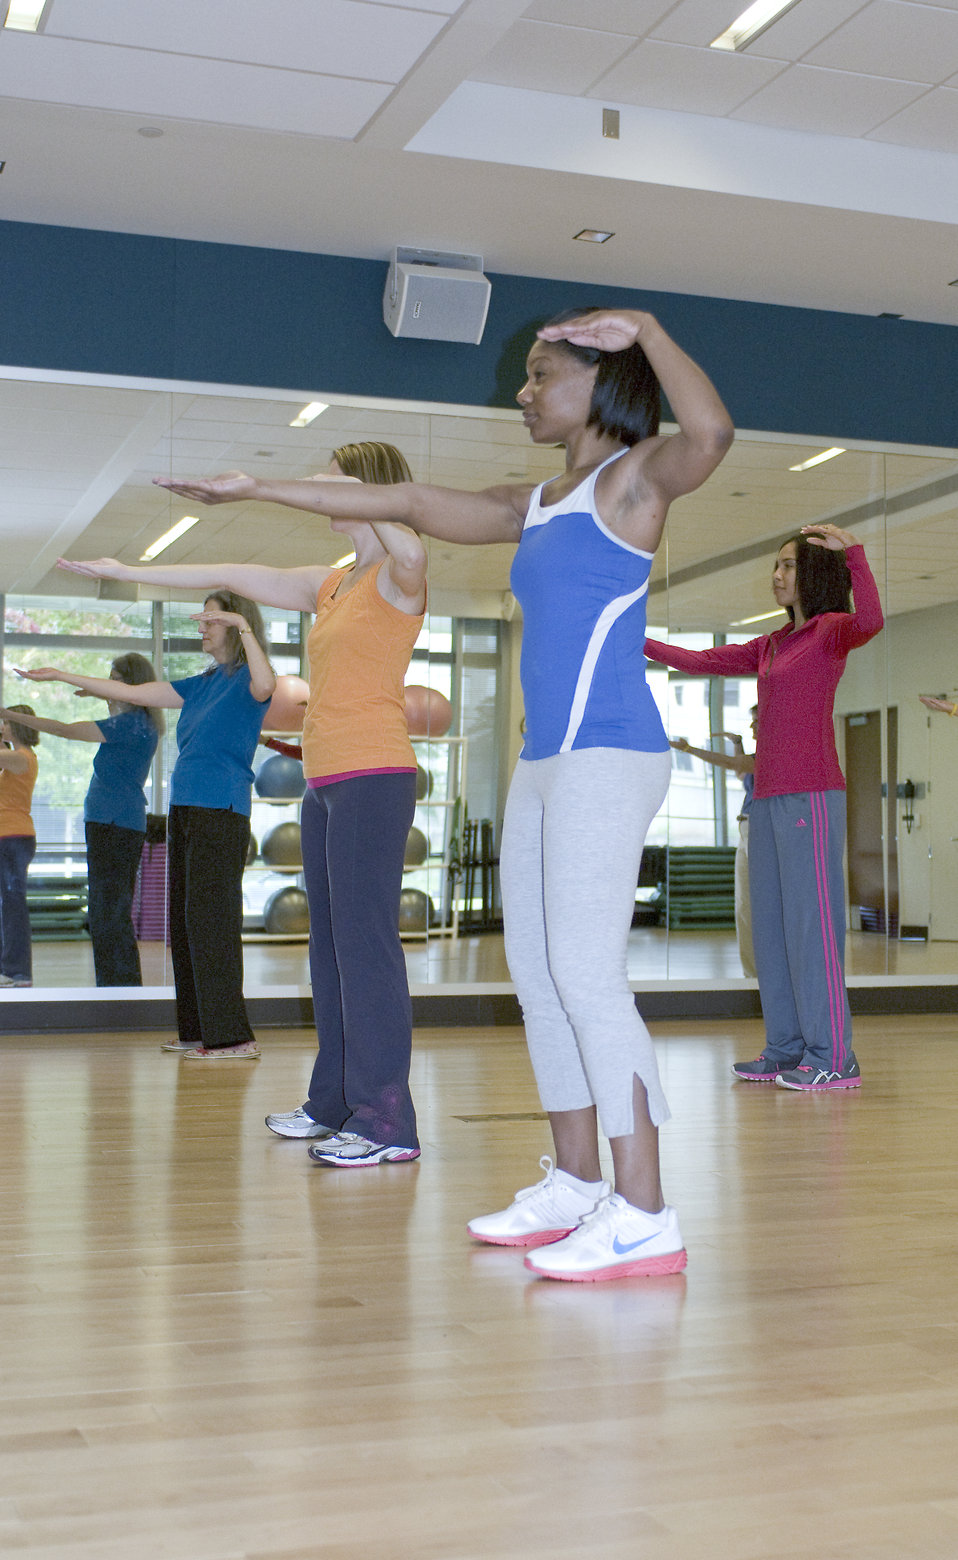 A group of women doing aerobics : Free Stock Photo